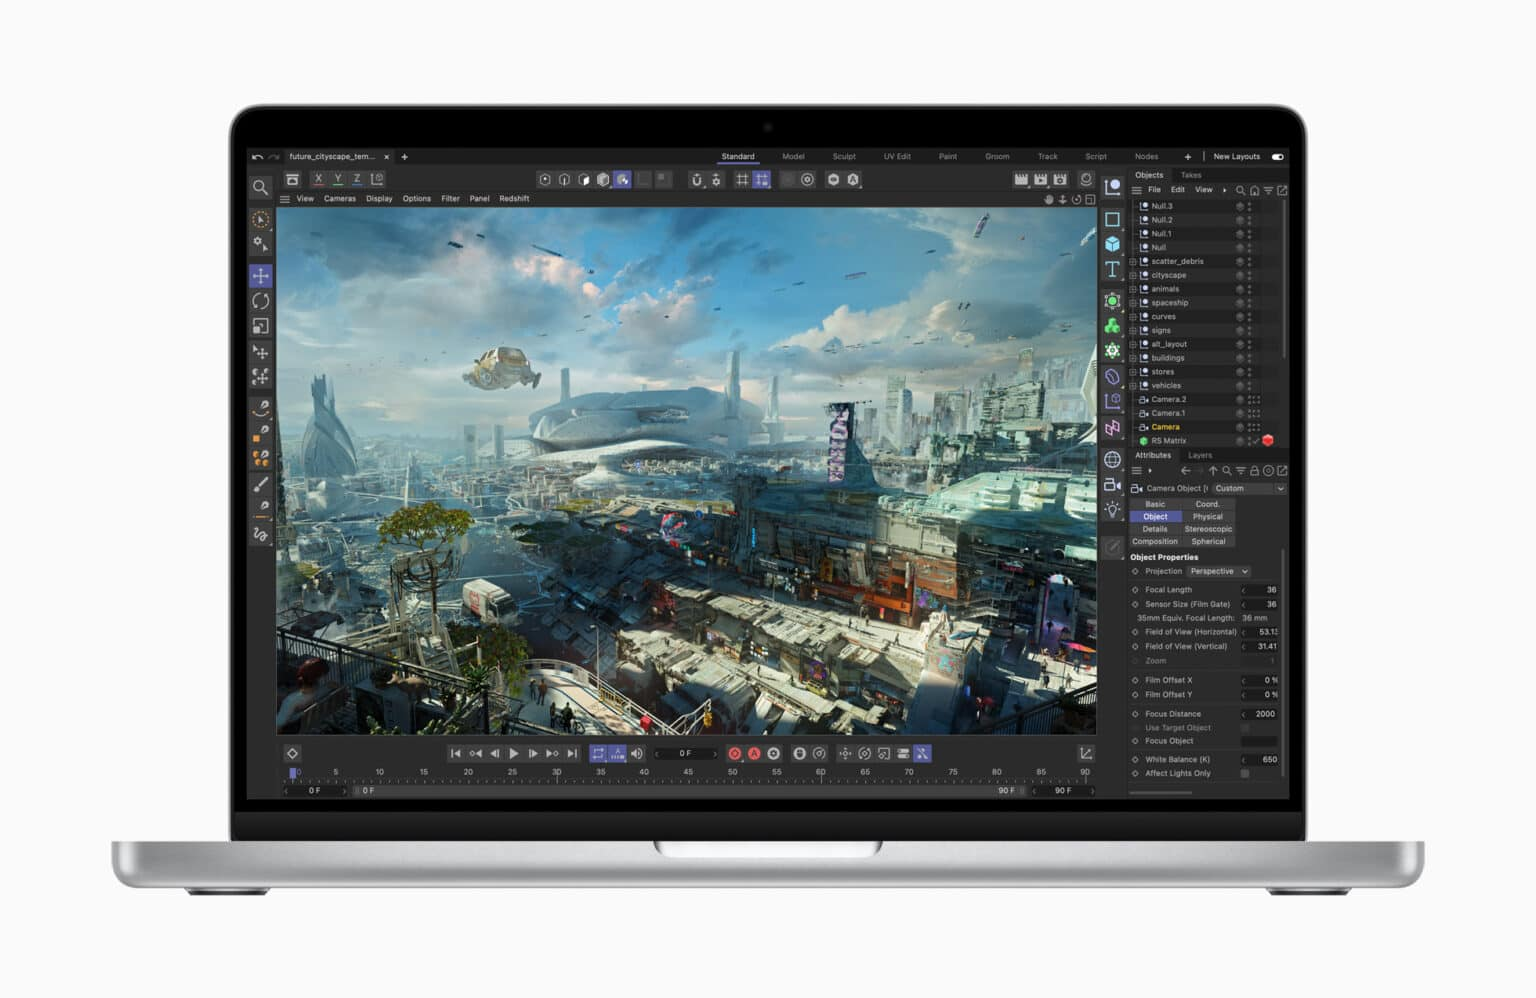 2021 MacBook Pro with M1 Pro and M1 Max chips